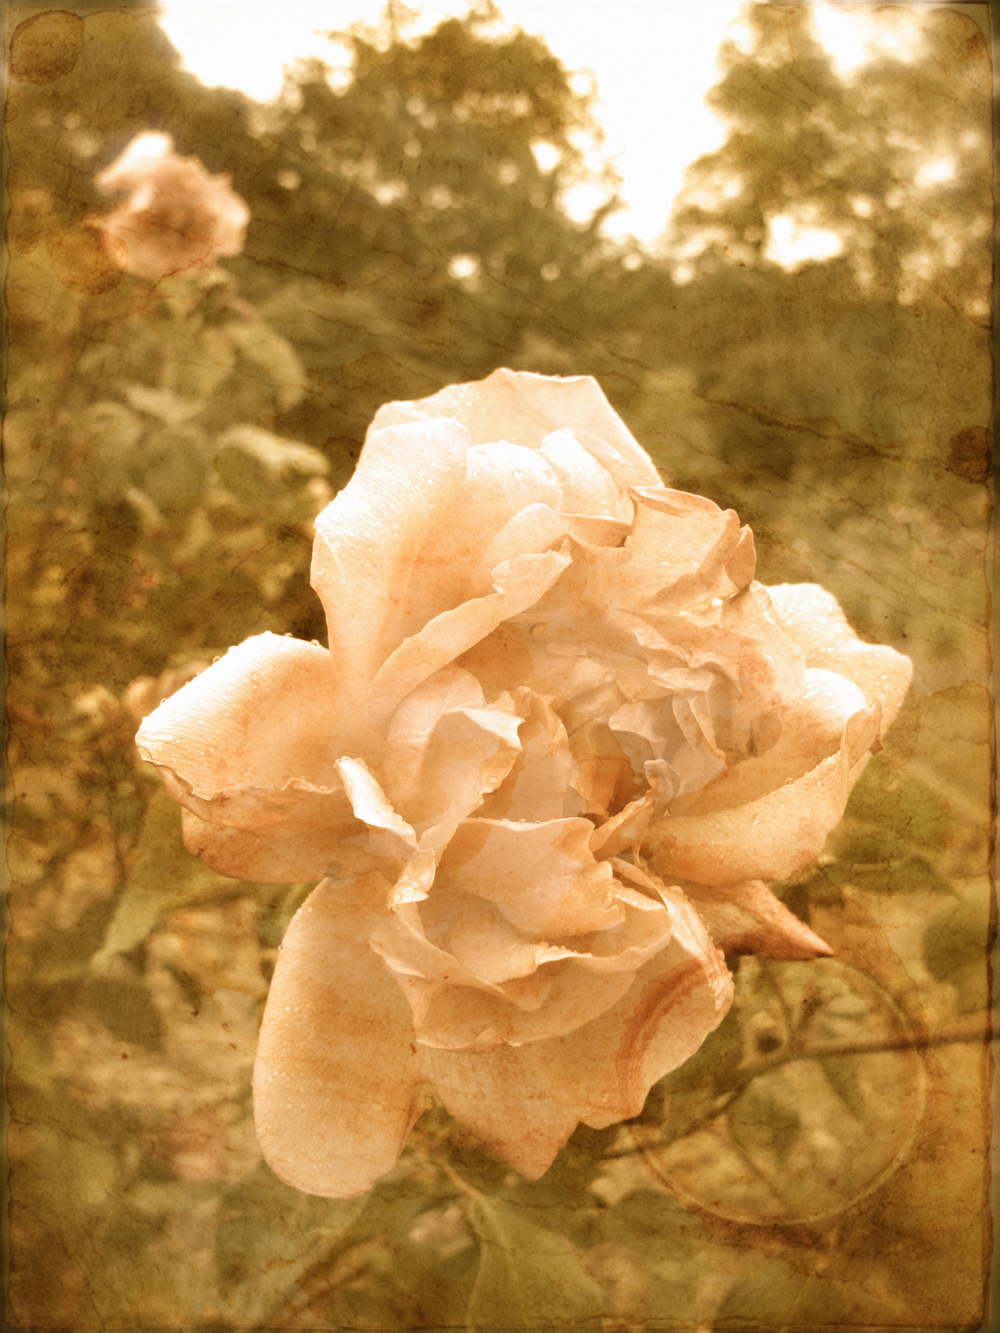 Old style Victorian photo of a rose